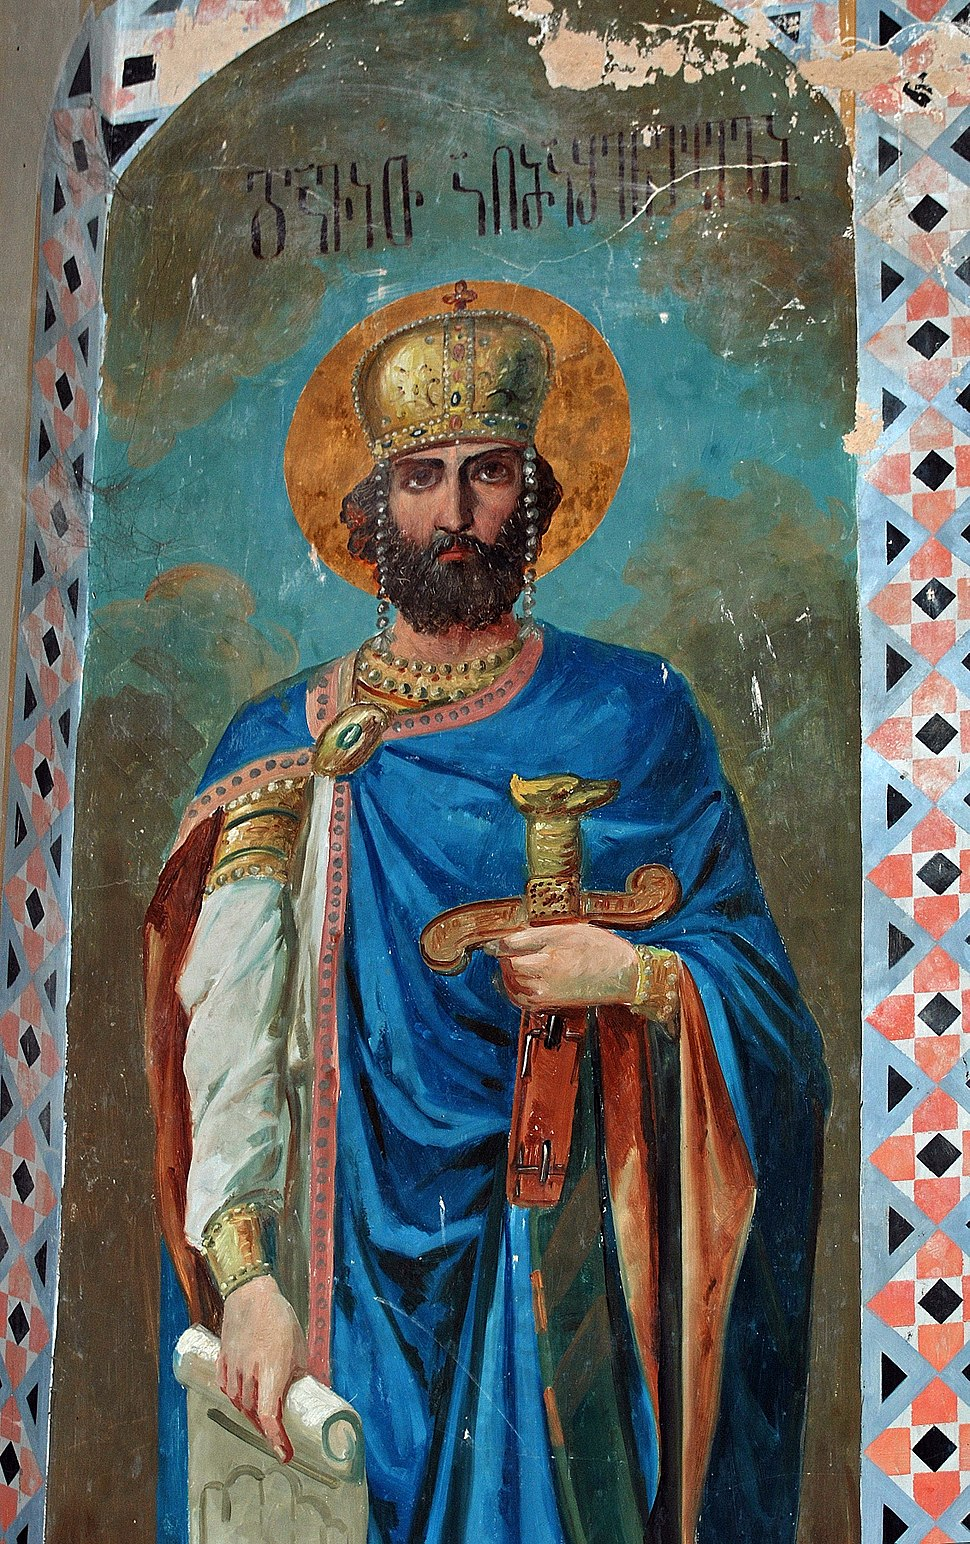 King David Aghmashenebeli